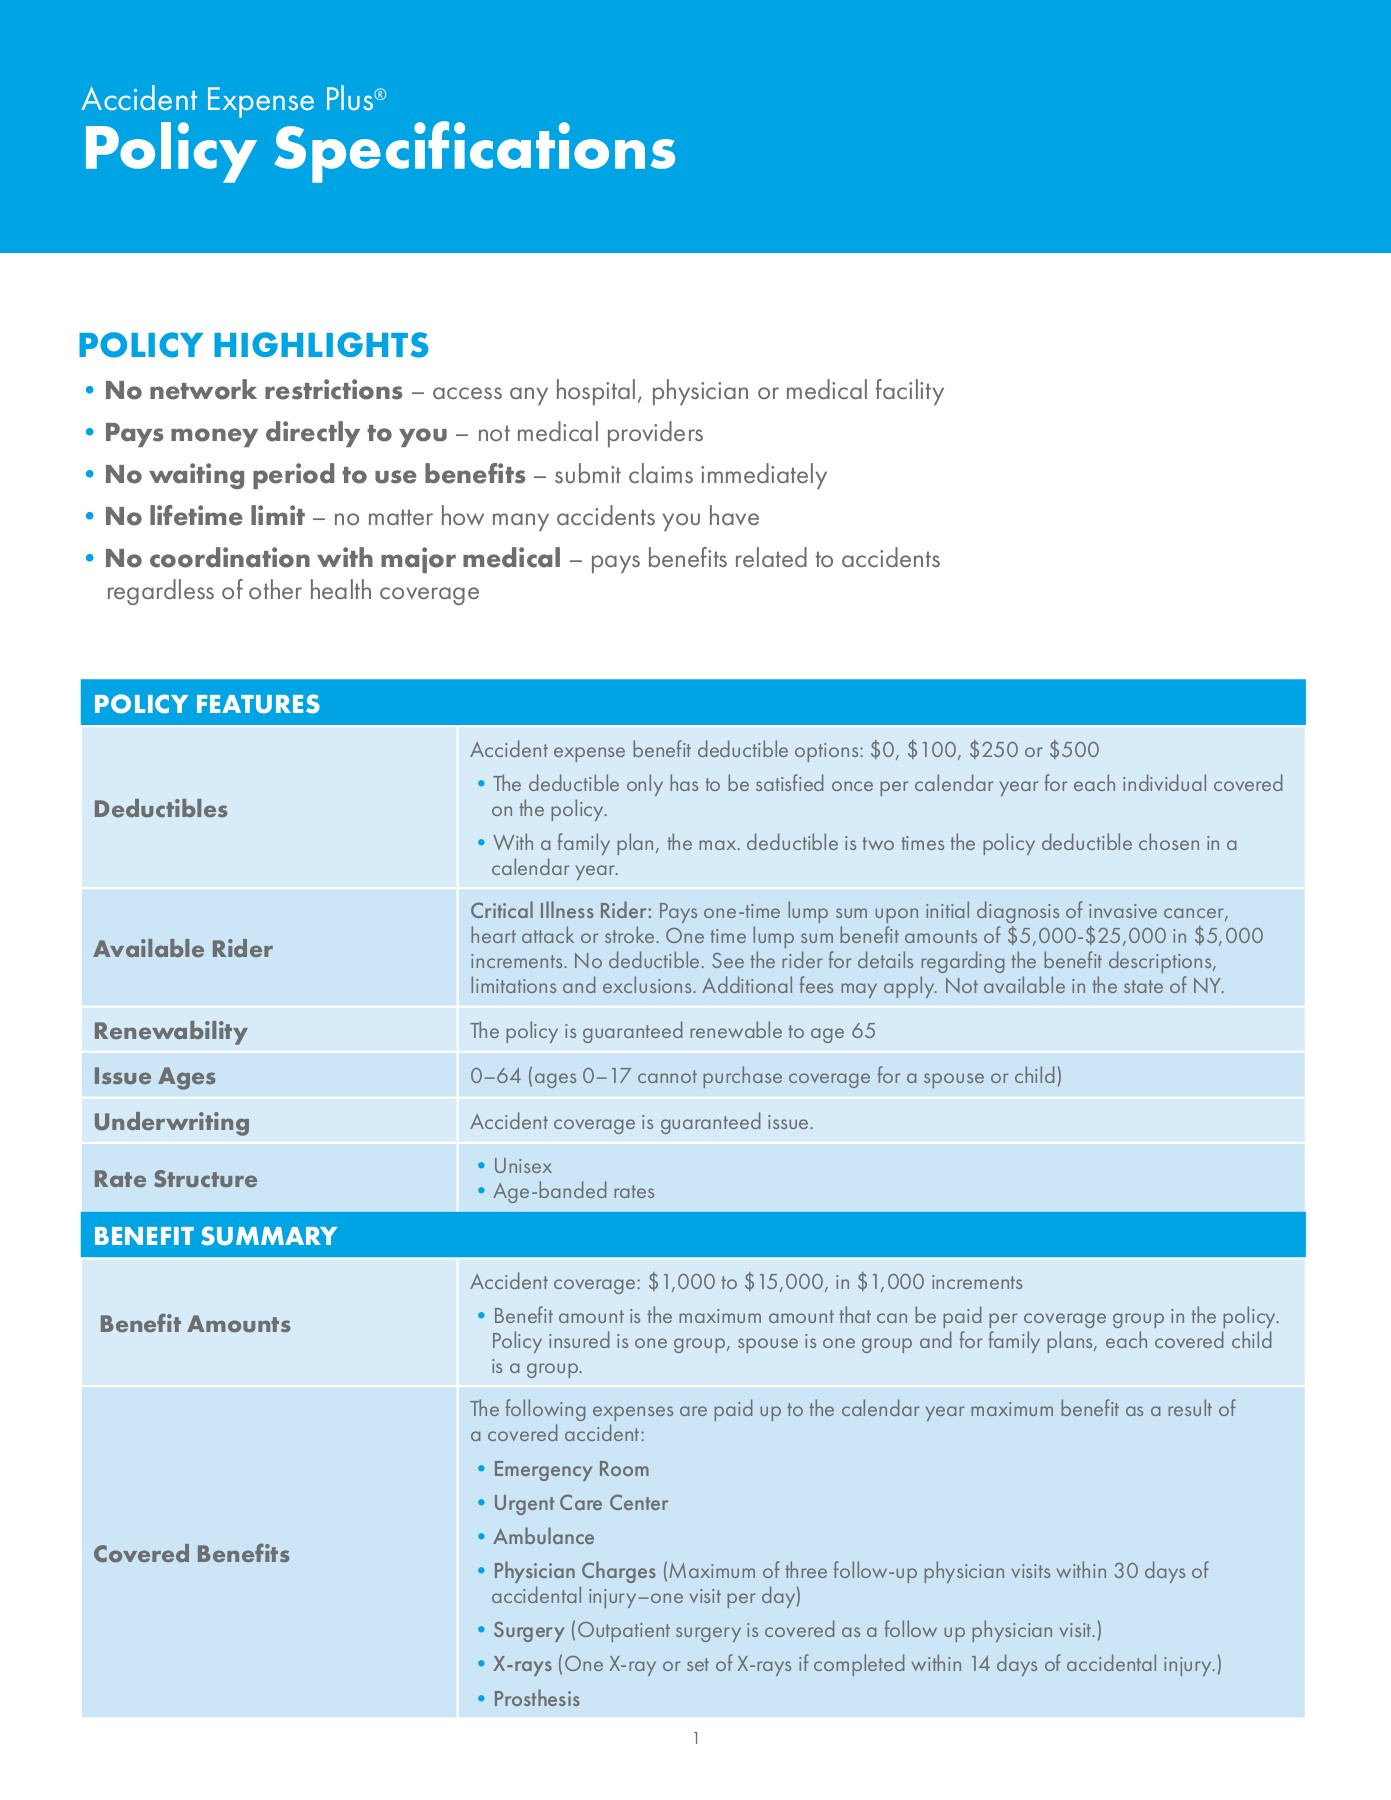 Policy Specifications - Aig Pages 1 - 3 - Text Version | Anyflip